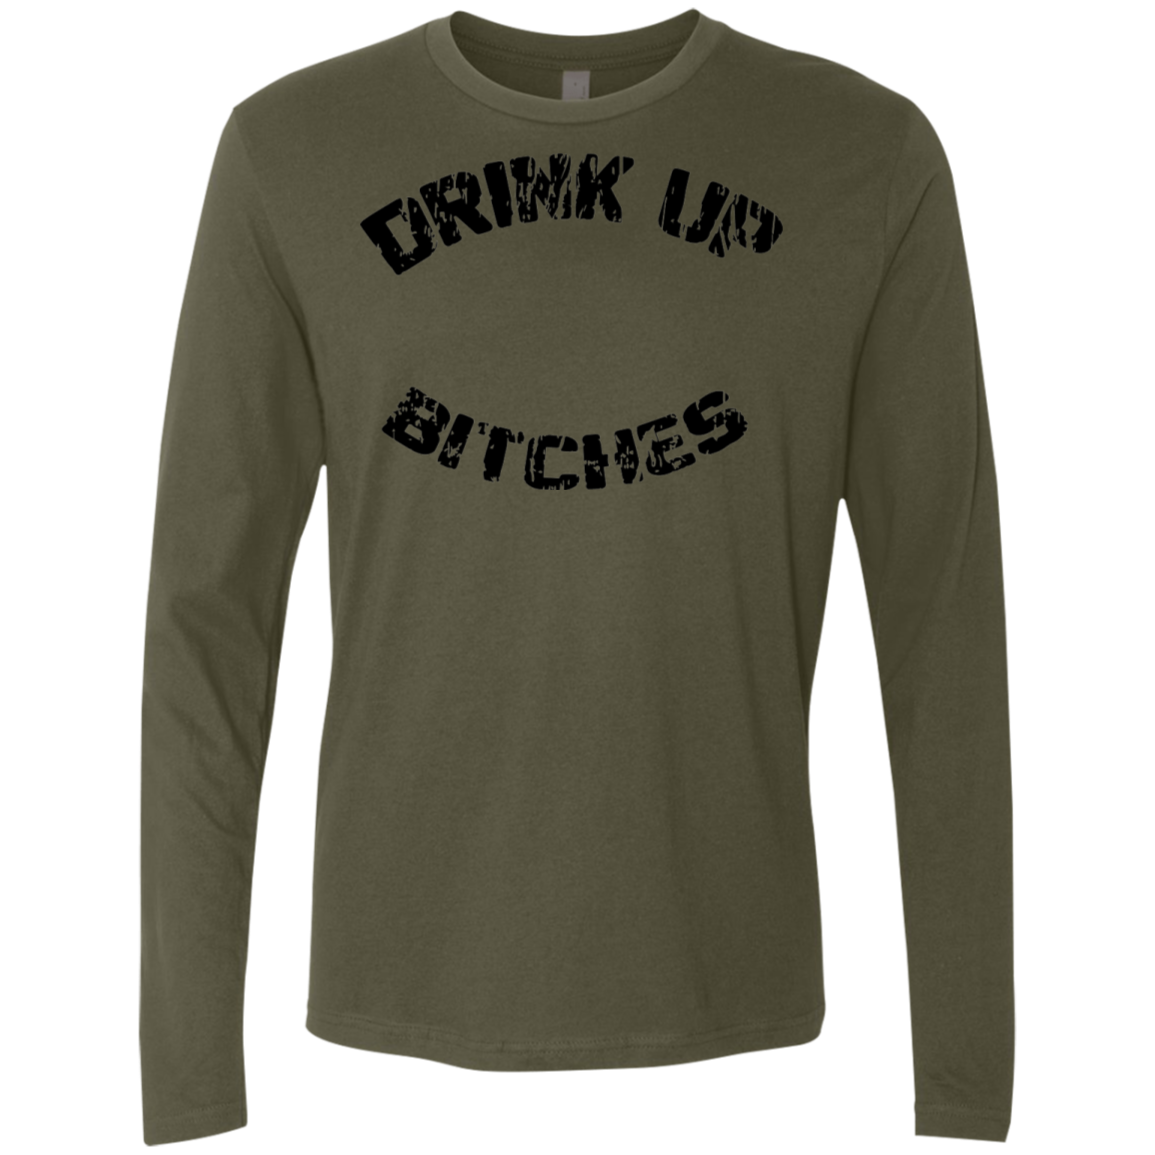 Drink Up Bitches Men's Long Sleeve Tee